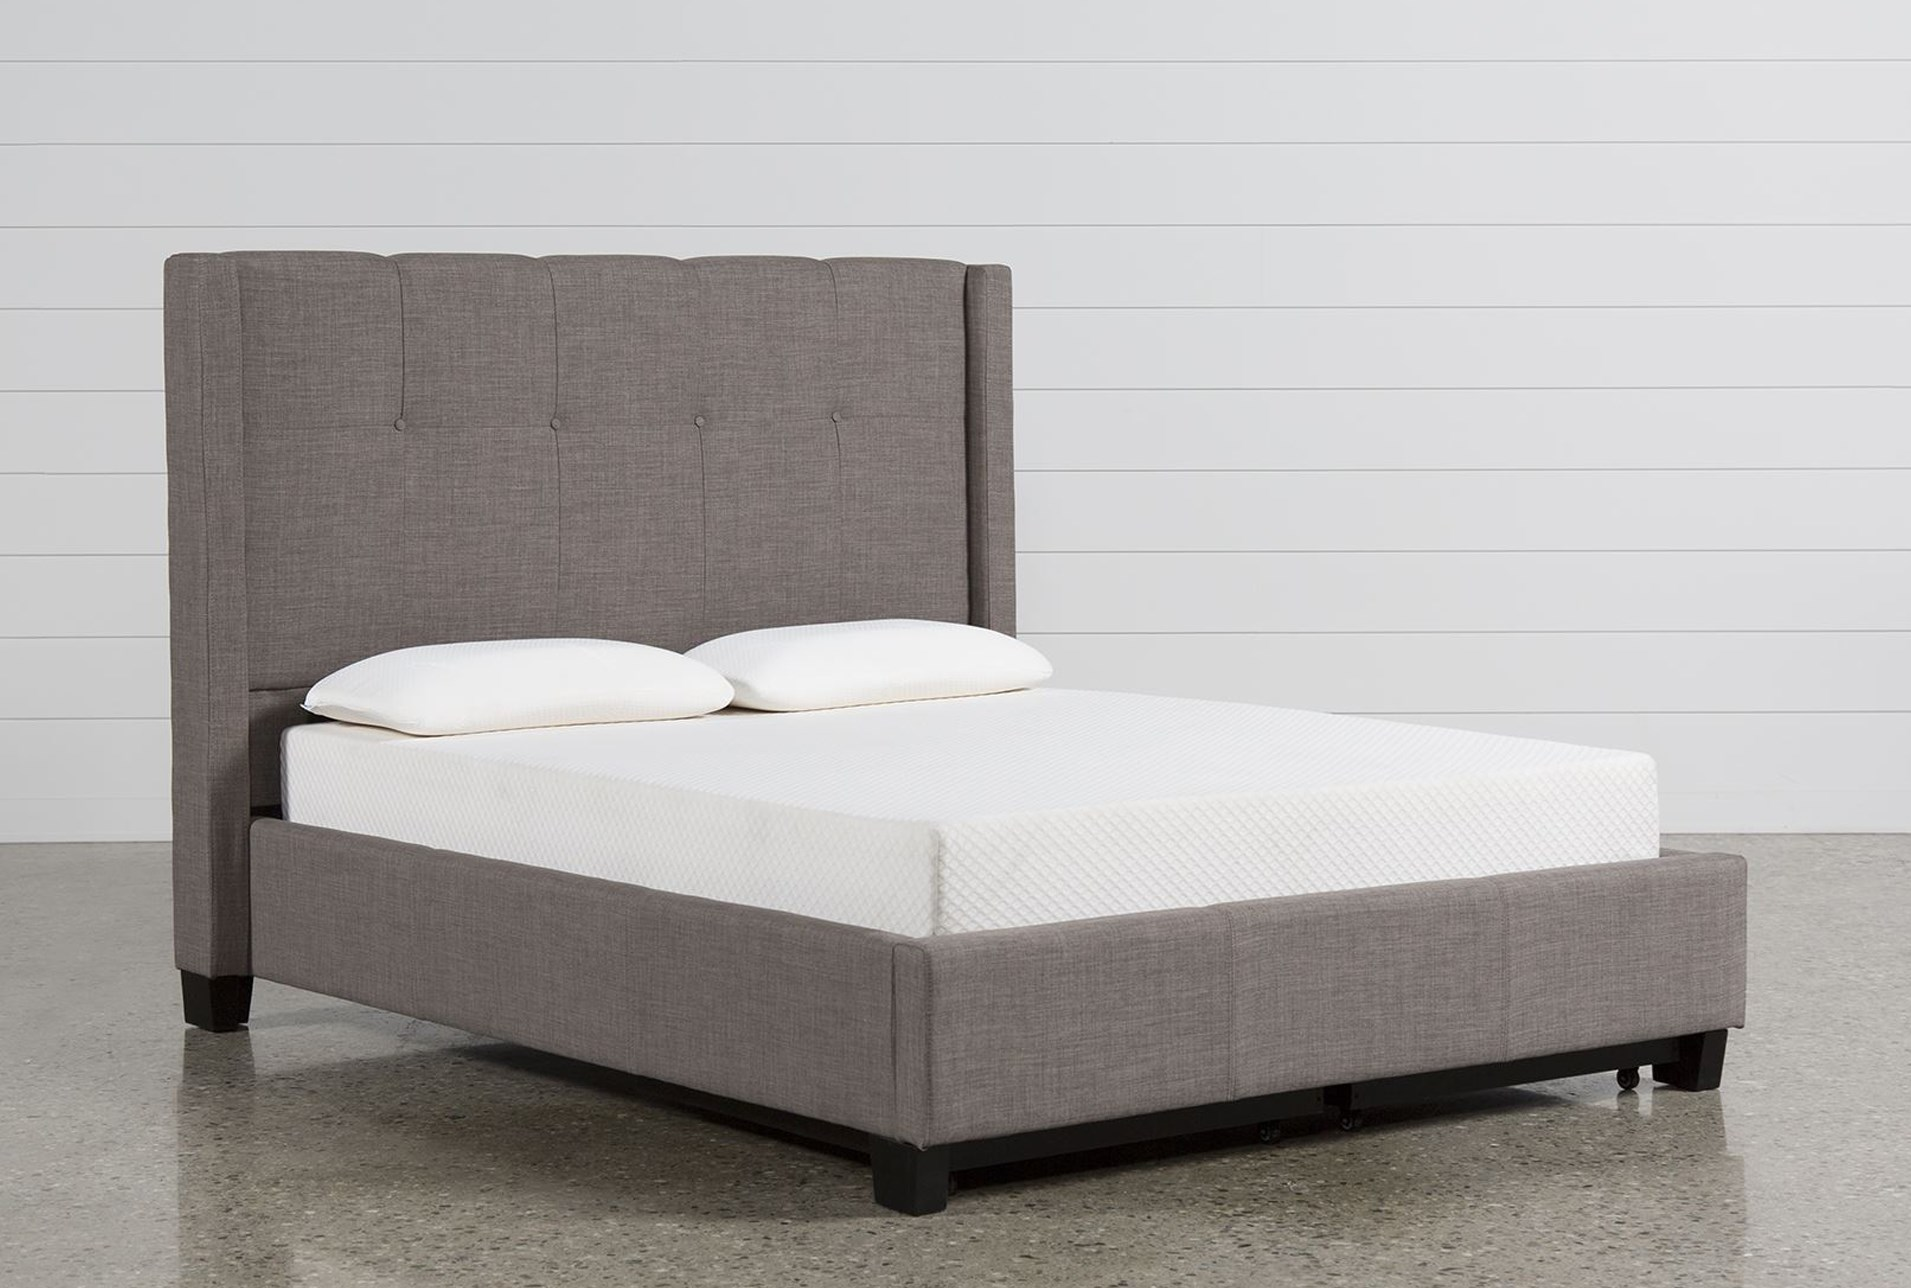 Damon Stone California King Upholstered Platform Bed W/Storage ...